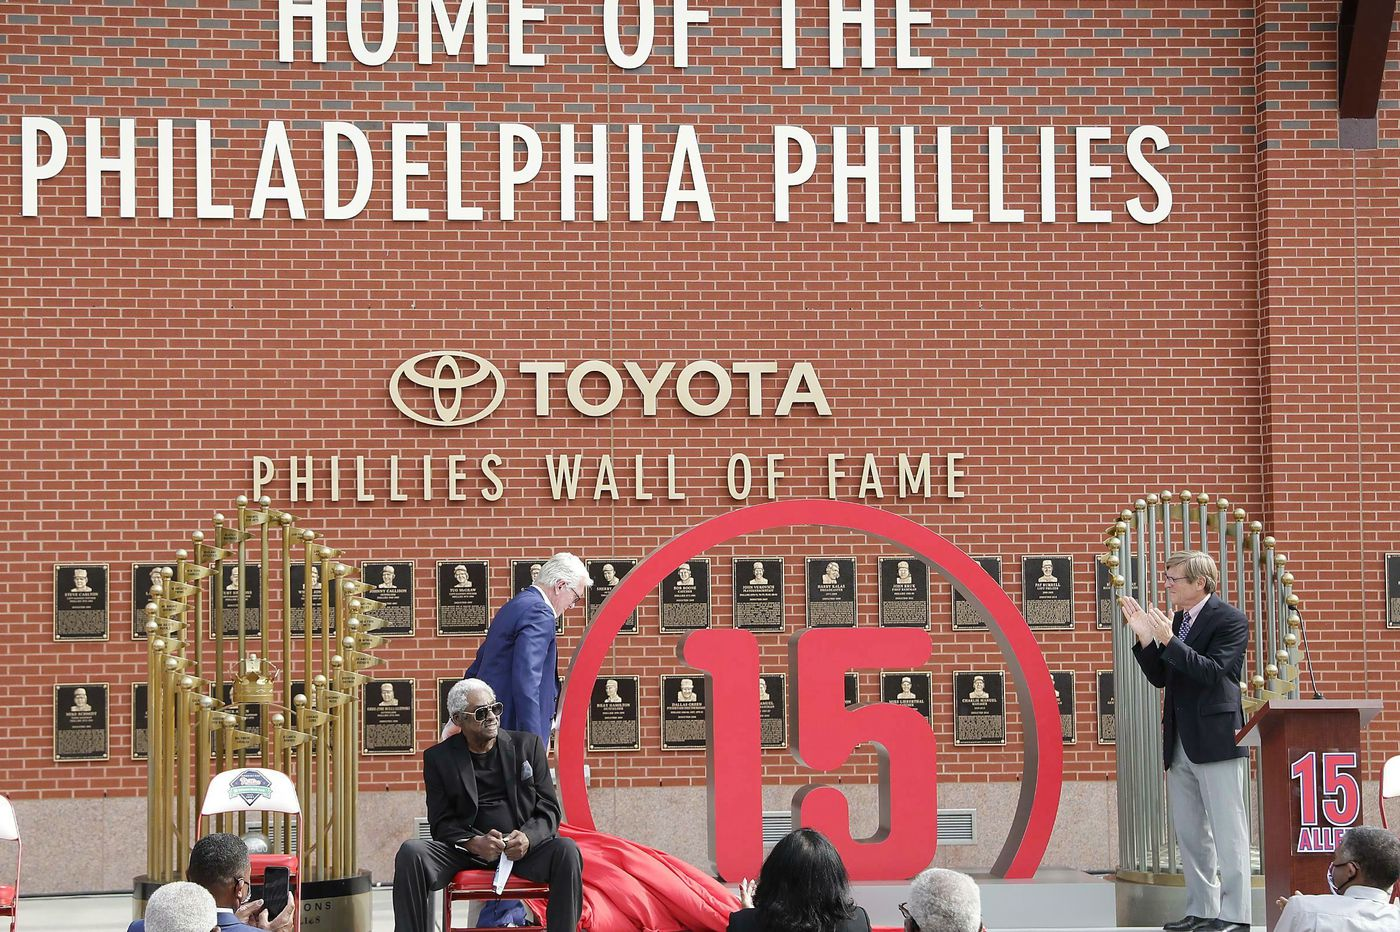 Honor Dick Allen with a statue in the Phillies' inner circle | Opinion